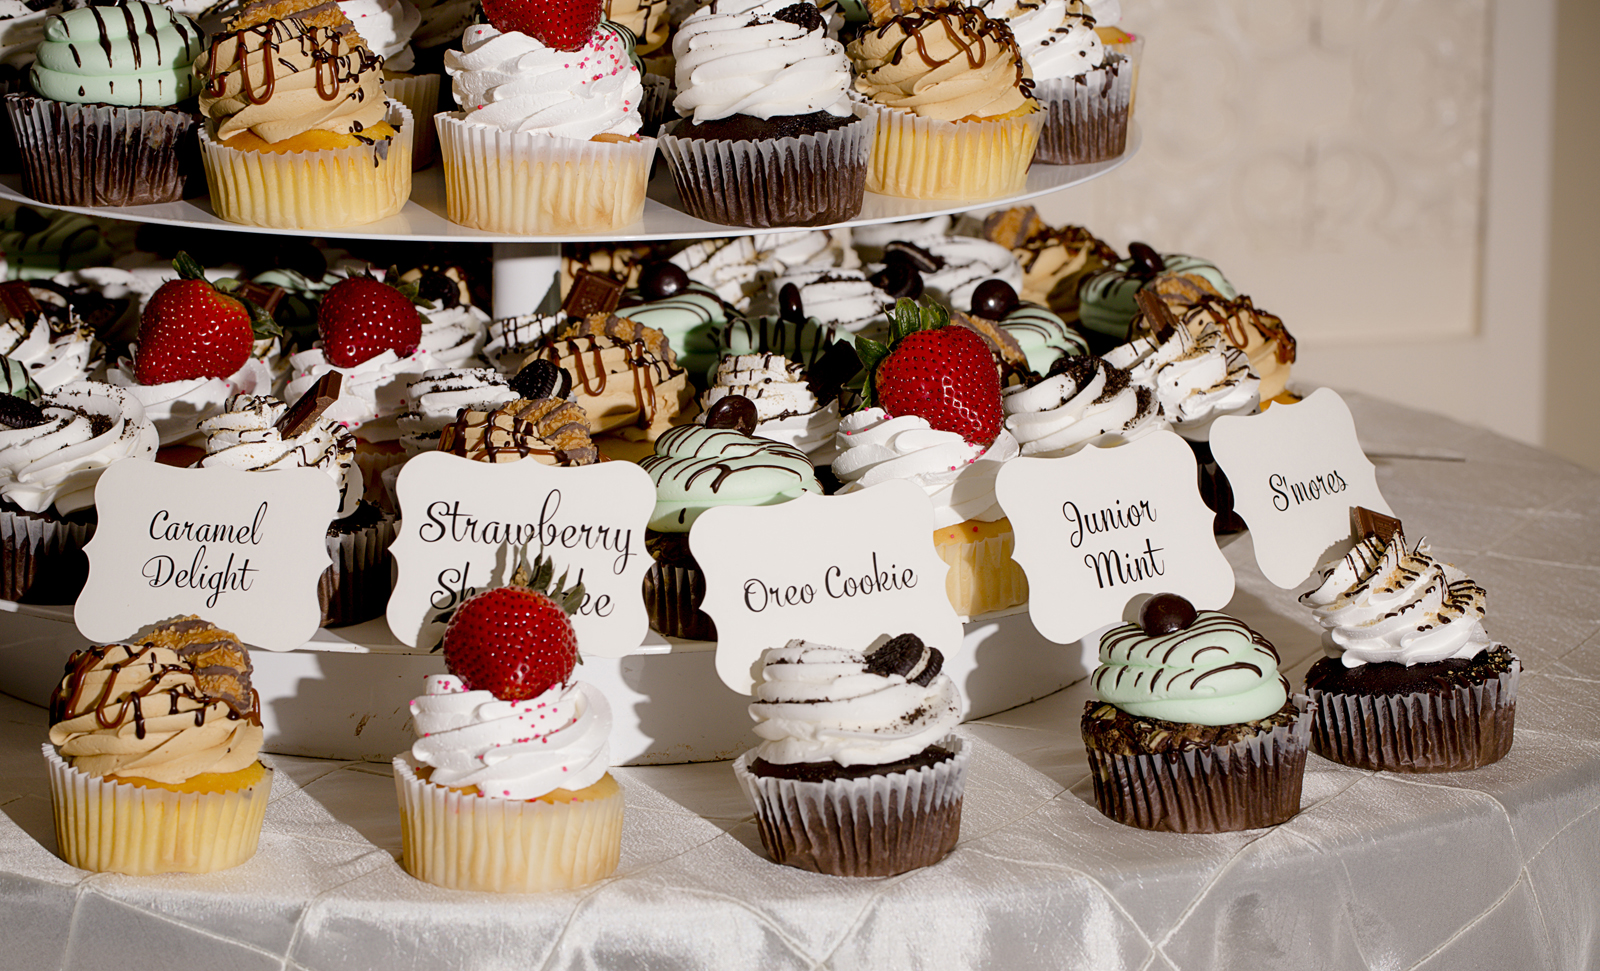 Delightfully Delicious: Tips for Creating Fun, Personalized Wedding Desserts